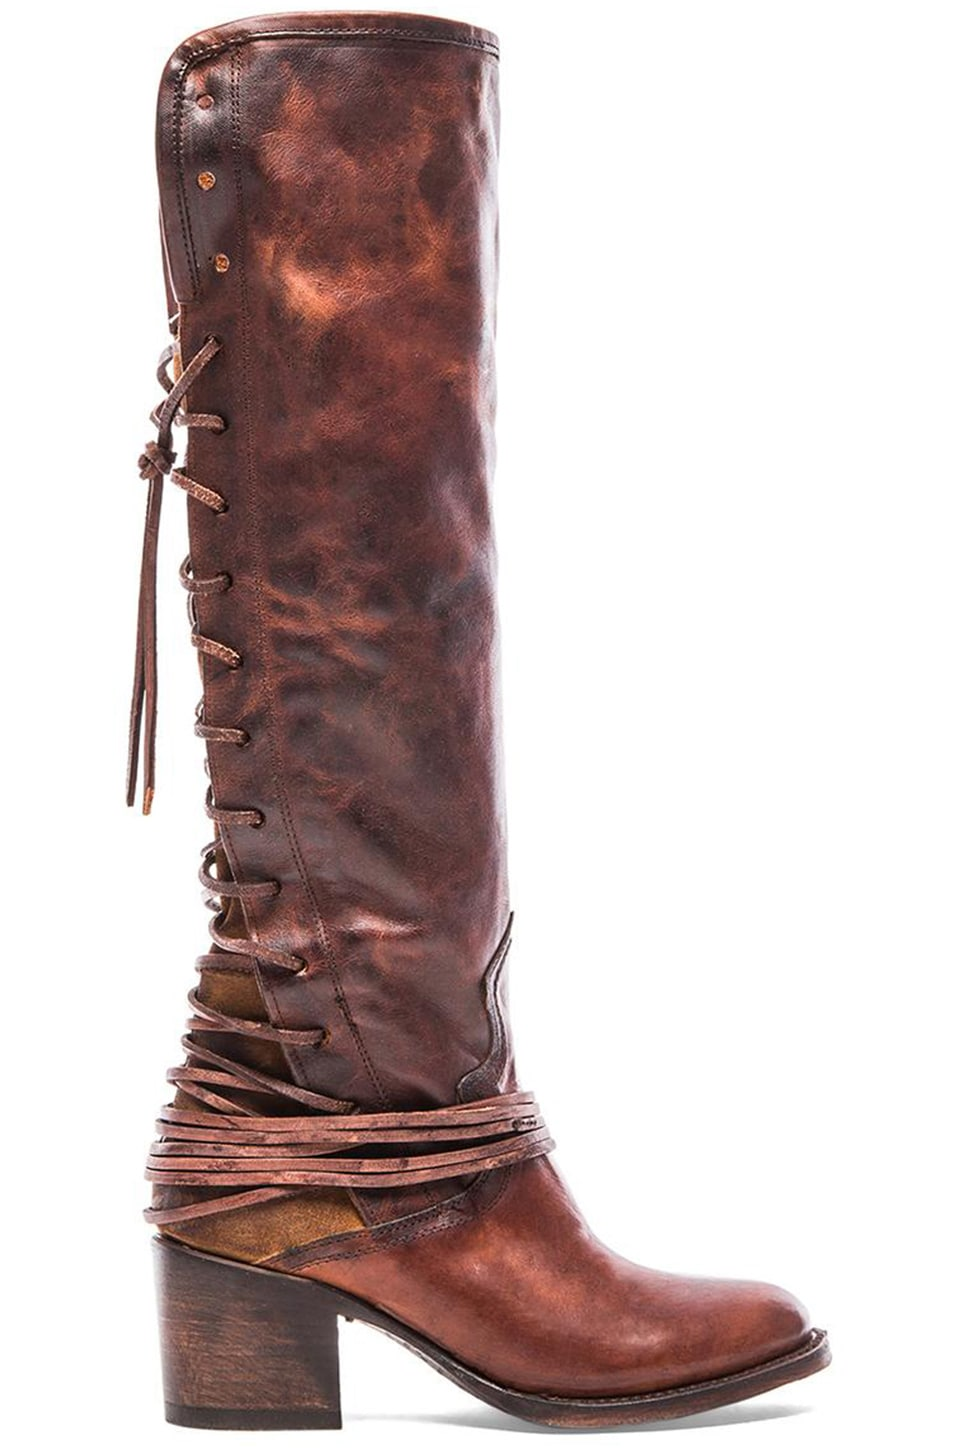 Freebird by Steven Coal Boot in Cognac